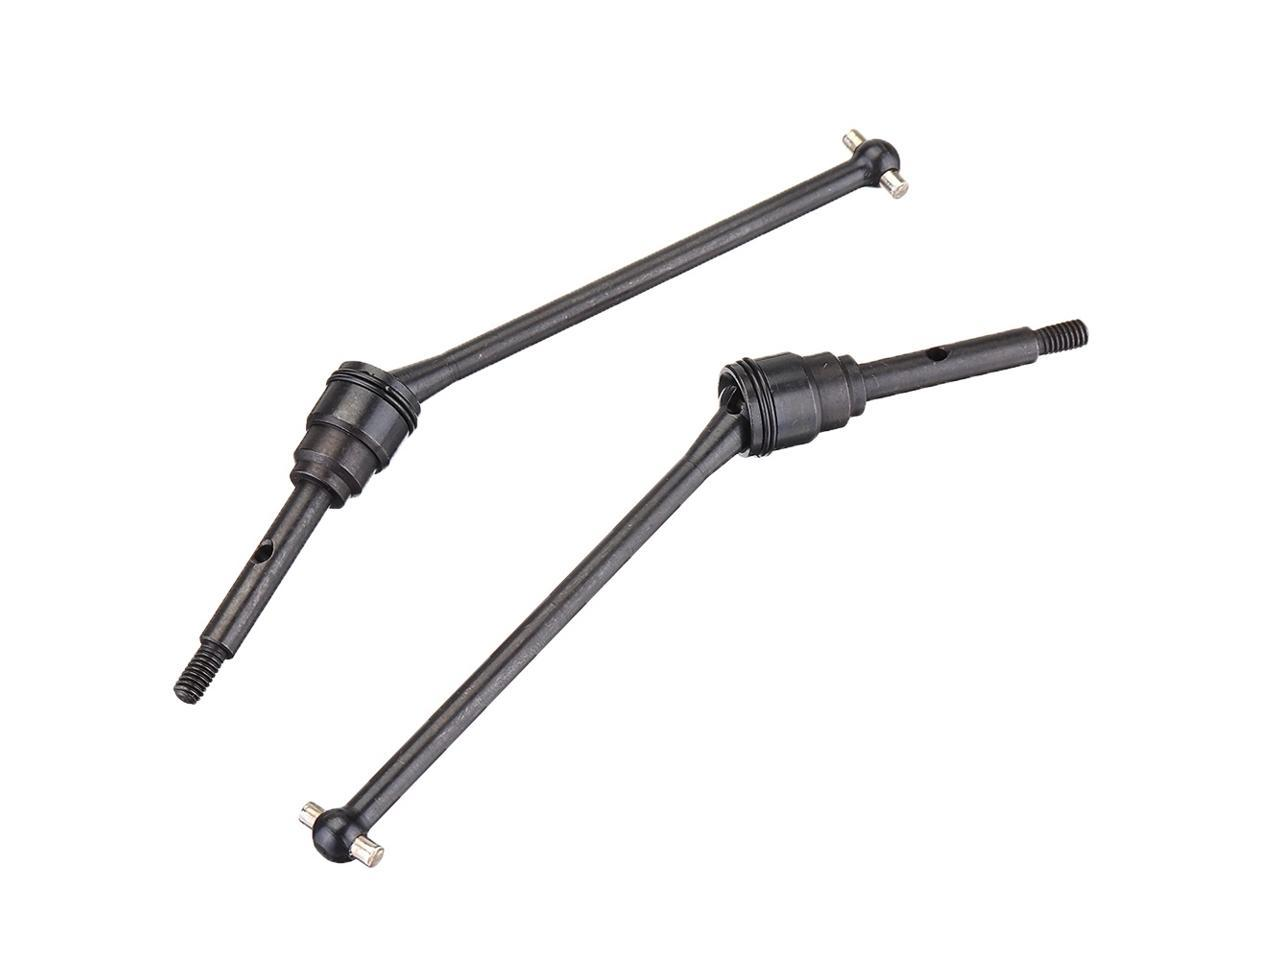 2pcs Remo Hobby M M Front Rear Cnc Steel Cvd Drive